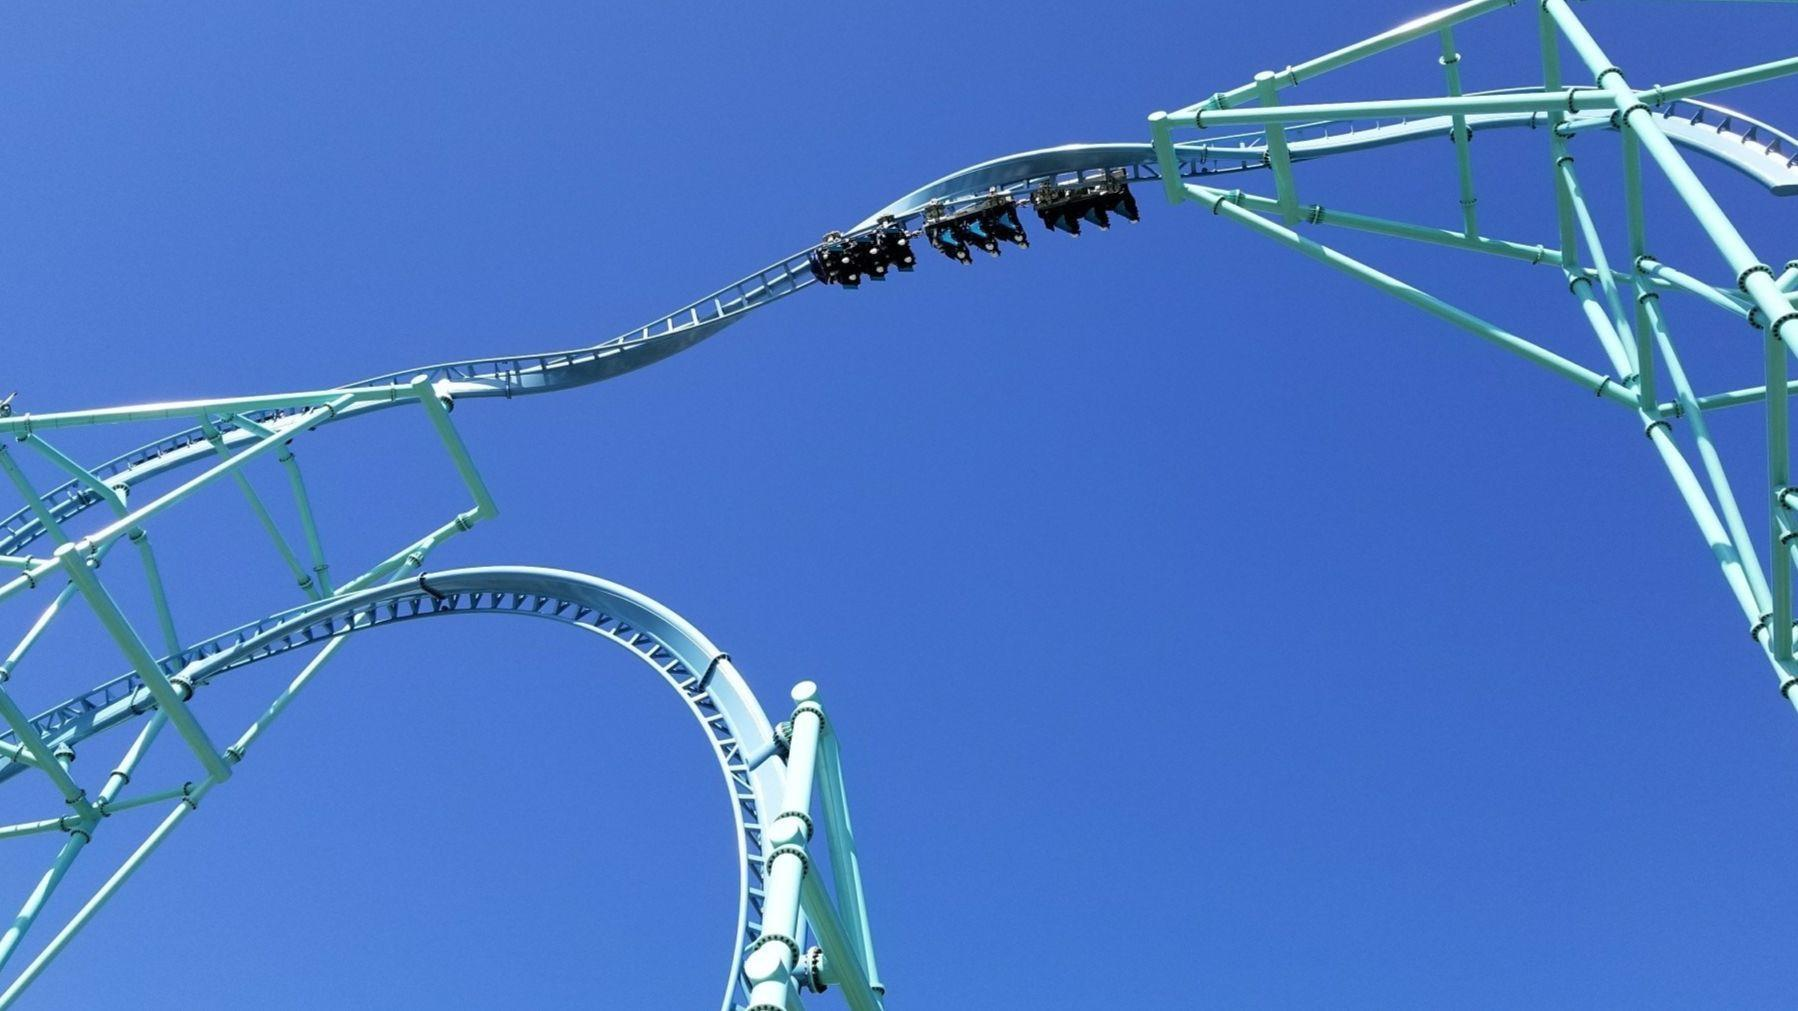 San Diego Electric >> SeaWorld's Electric Eel coaster opens in May - The San ...